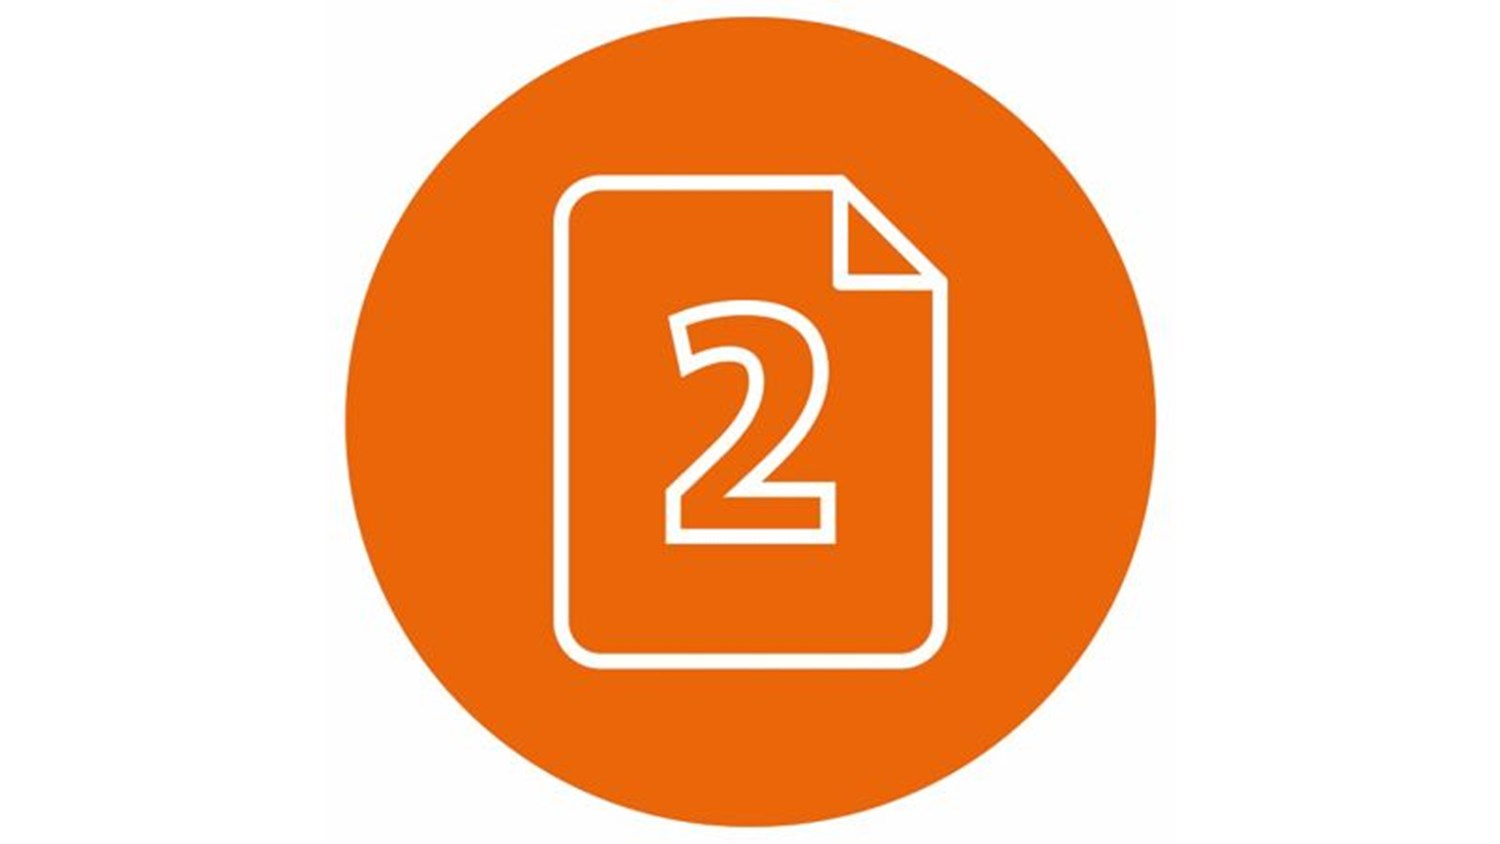 Orange circle with white icon of a two in a rectangle with the top right corner folded inwards